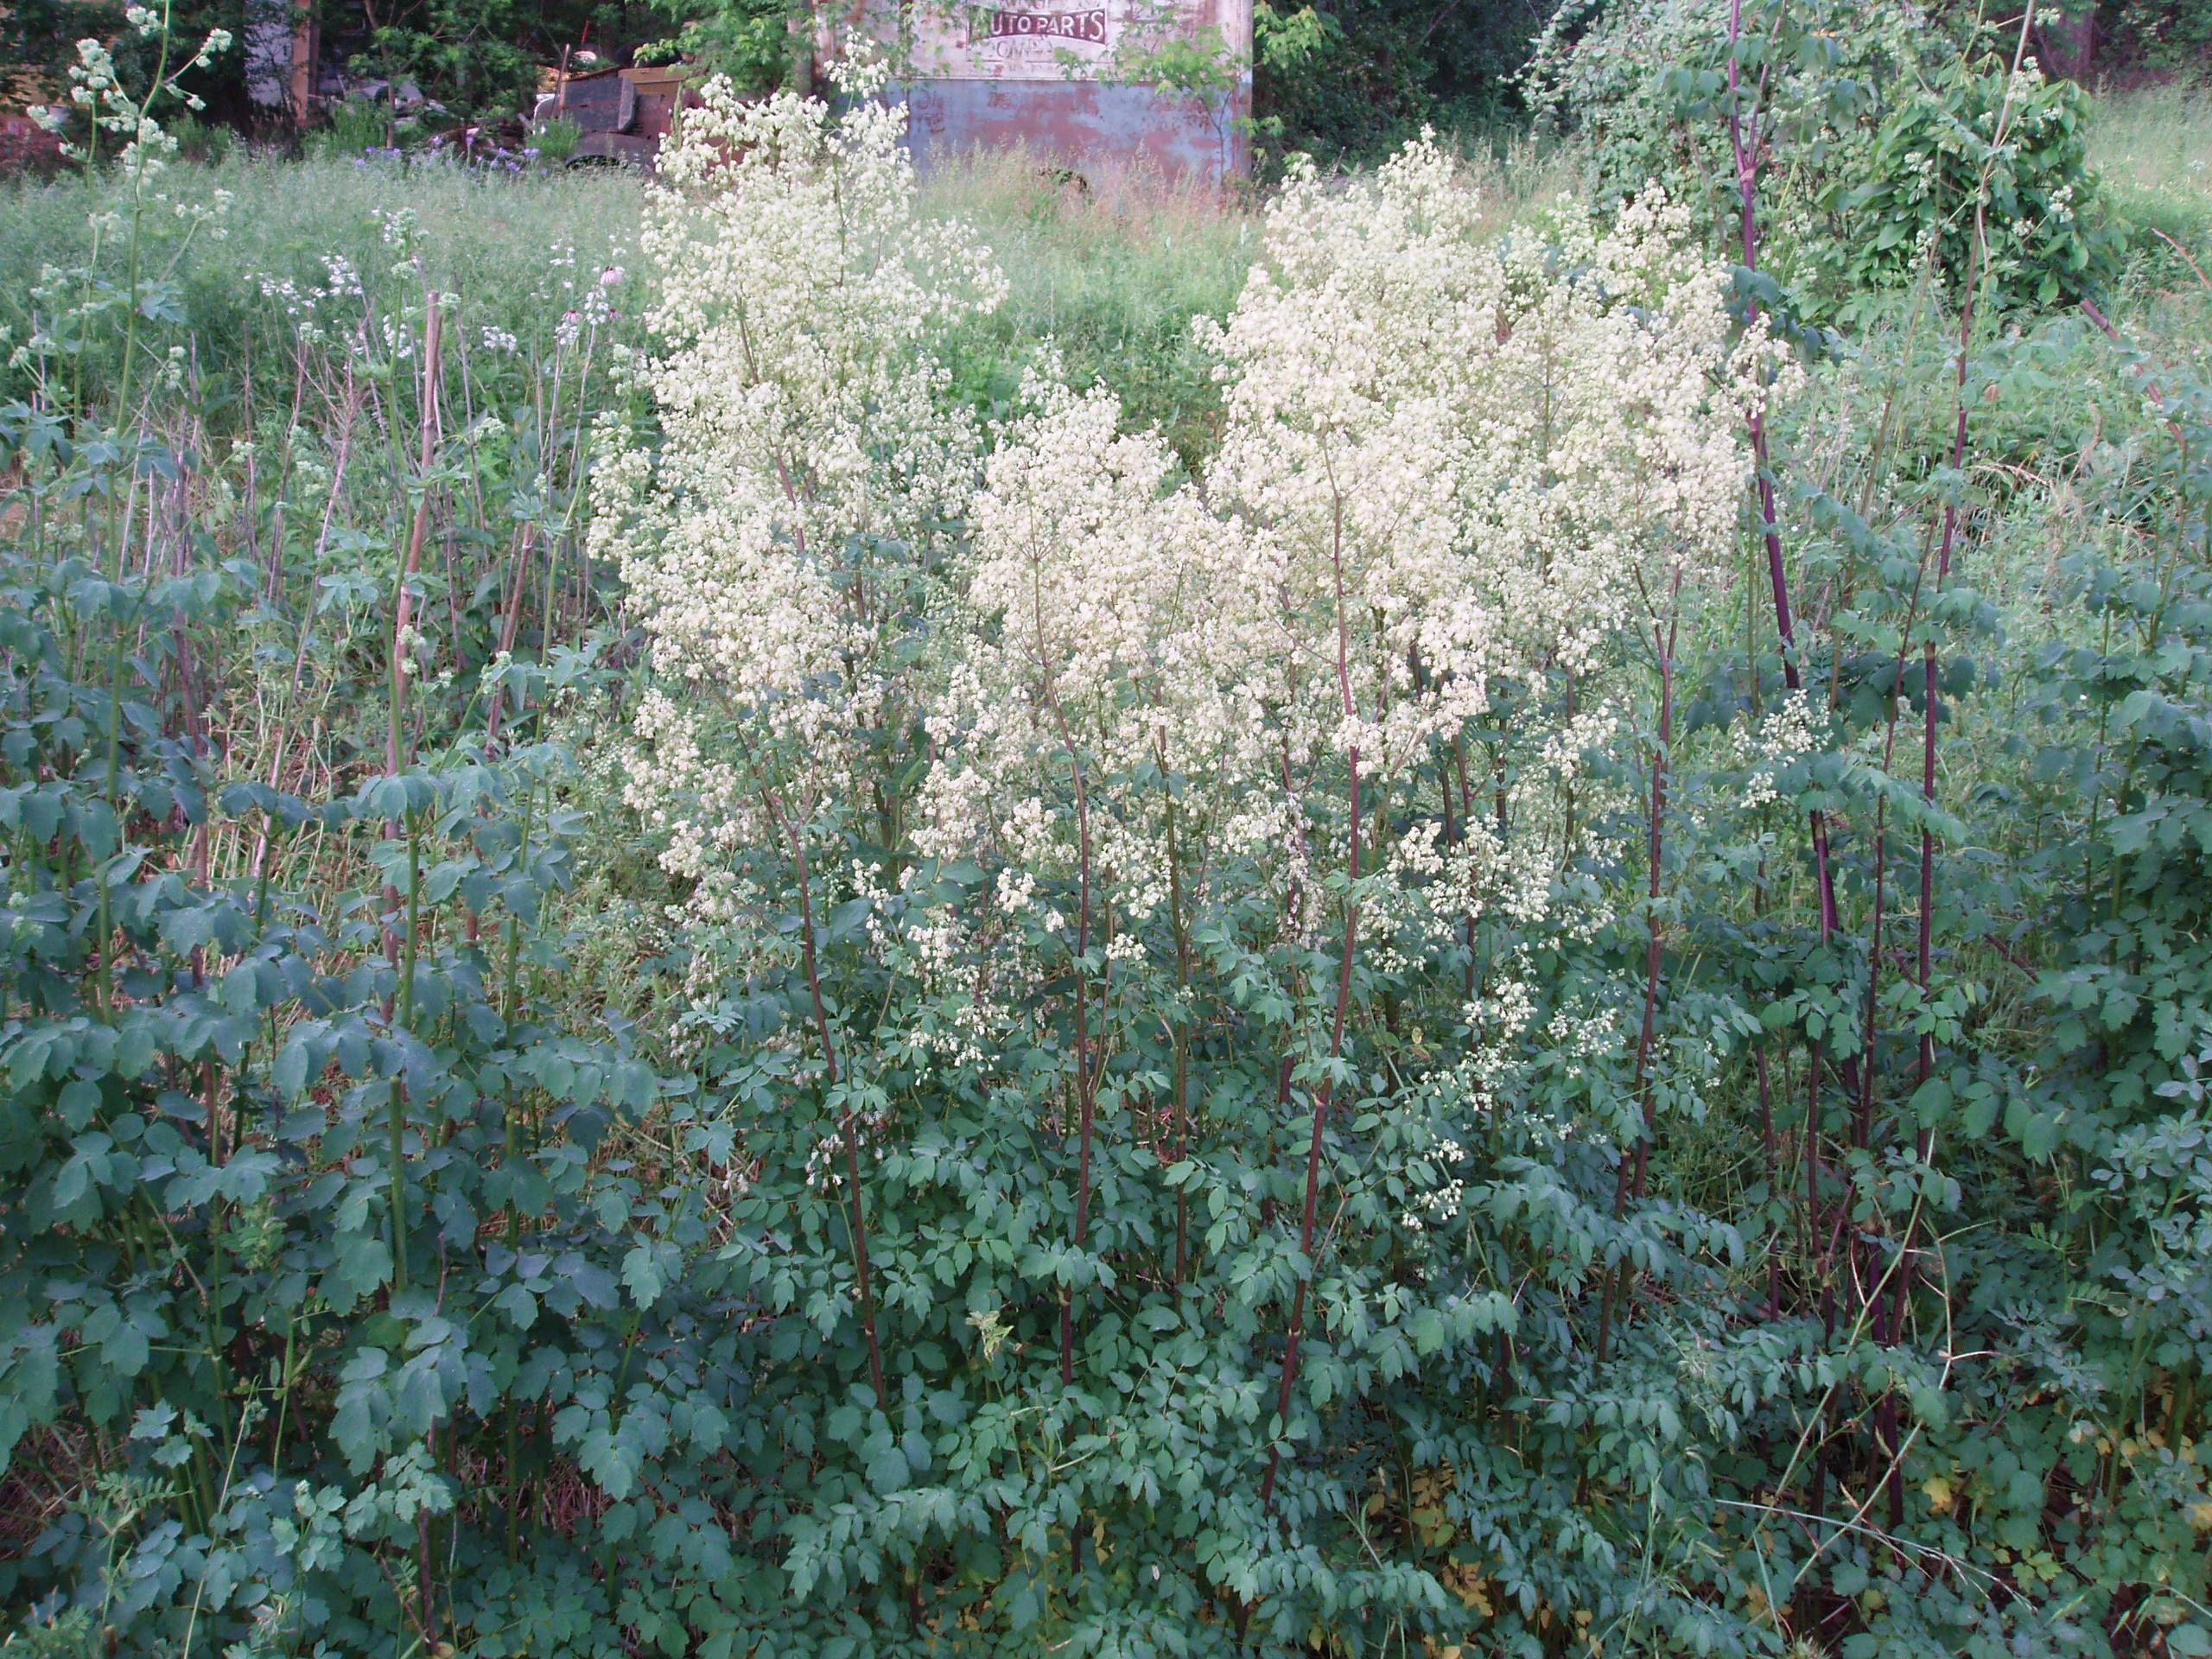 "{""blocks"":[{""key"":""7qmam"",""text"":""Photo Thalictrum dasycarpum Purple Meadow Rue - potted plants email john@easywildflowers.com"",""type"":""unstyled"",""depth"":0,""inlineStyleRanges"":[],""entityRanges"":[],""data"":{}}],""entityMap"":{}}"